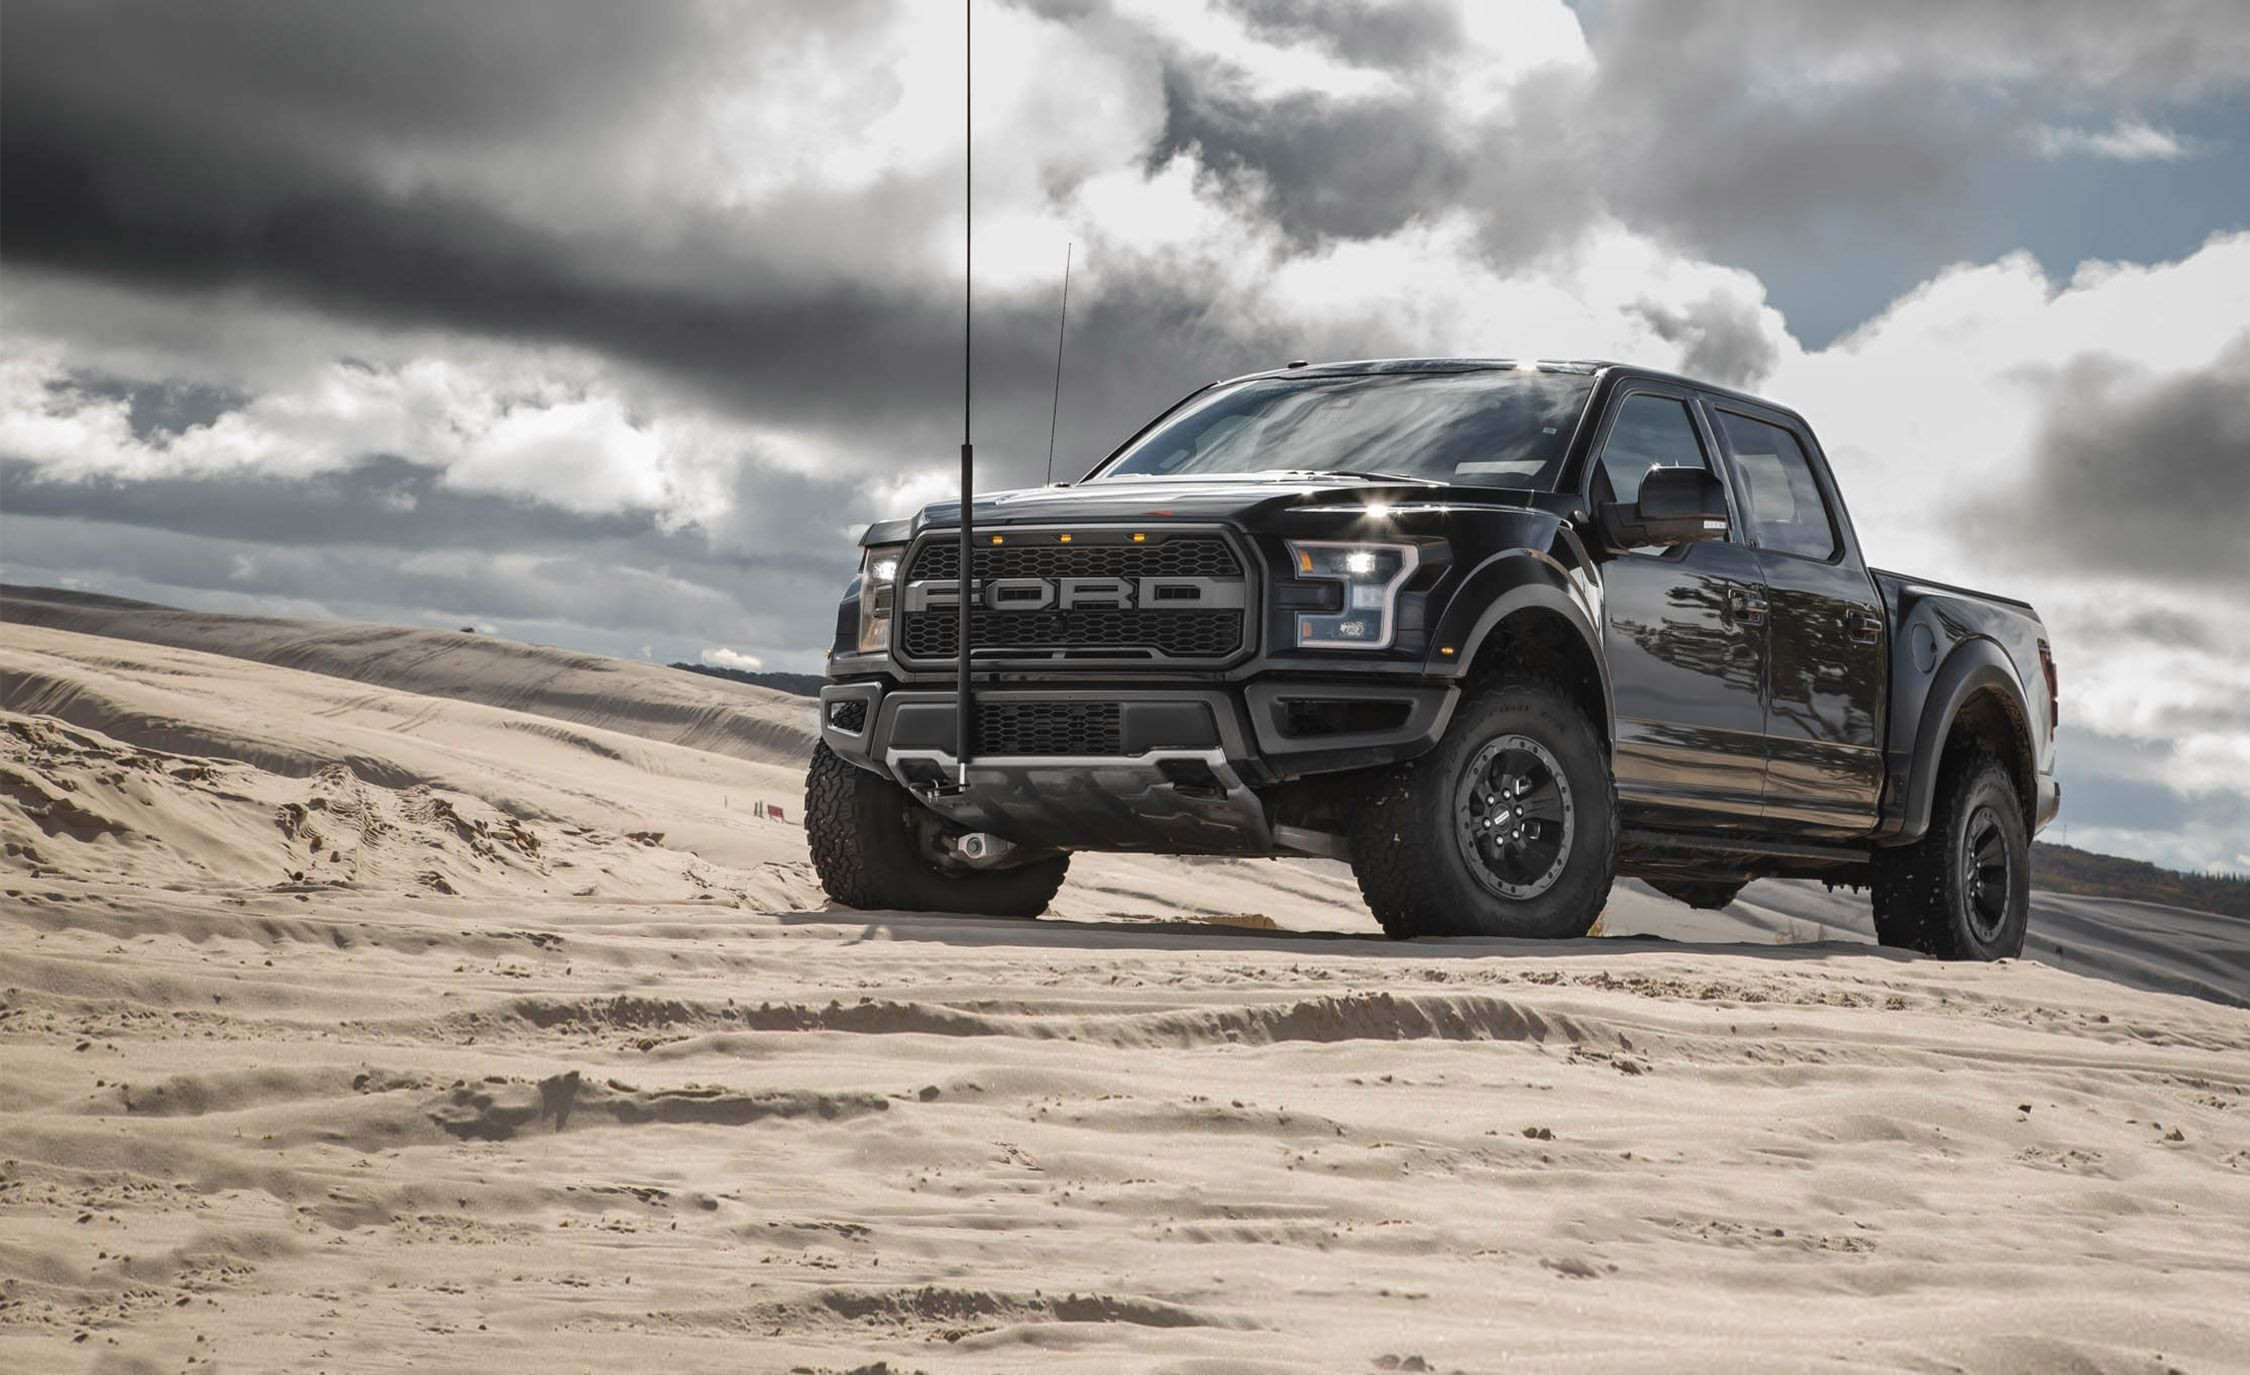 Ford F 150 Wallpapers Awesome 20 Fresh 2017 Ford Raptor Ford F 150 2018 Raptor 2250x1375 Download Hd Wallpaper Wallpapertip